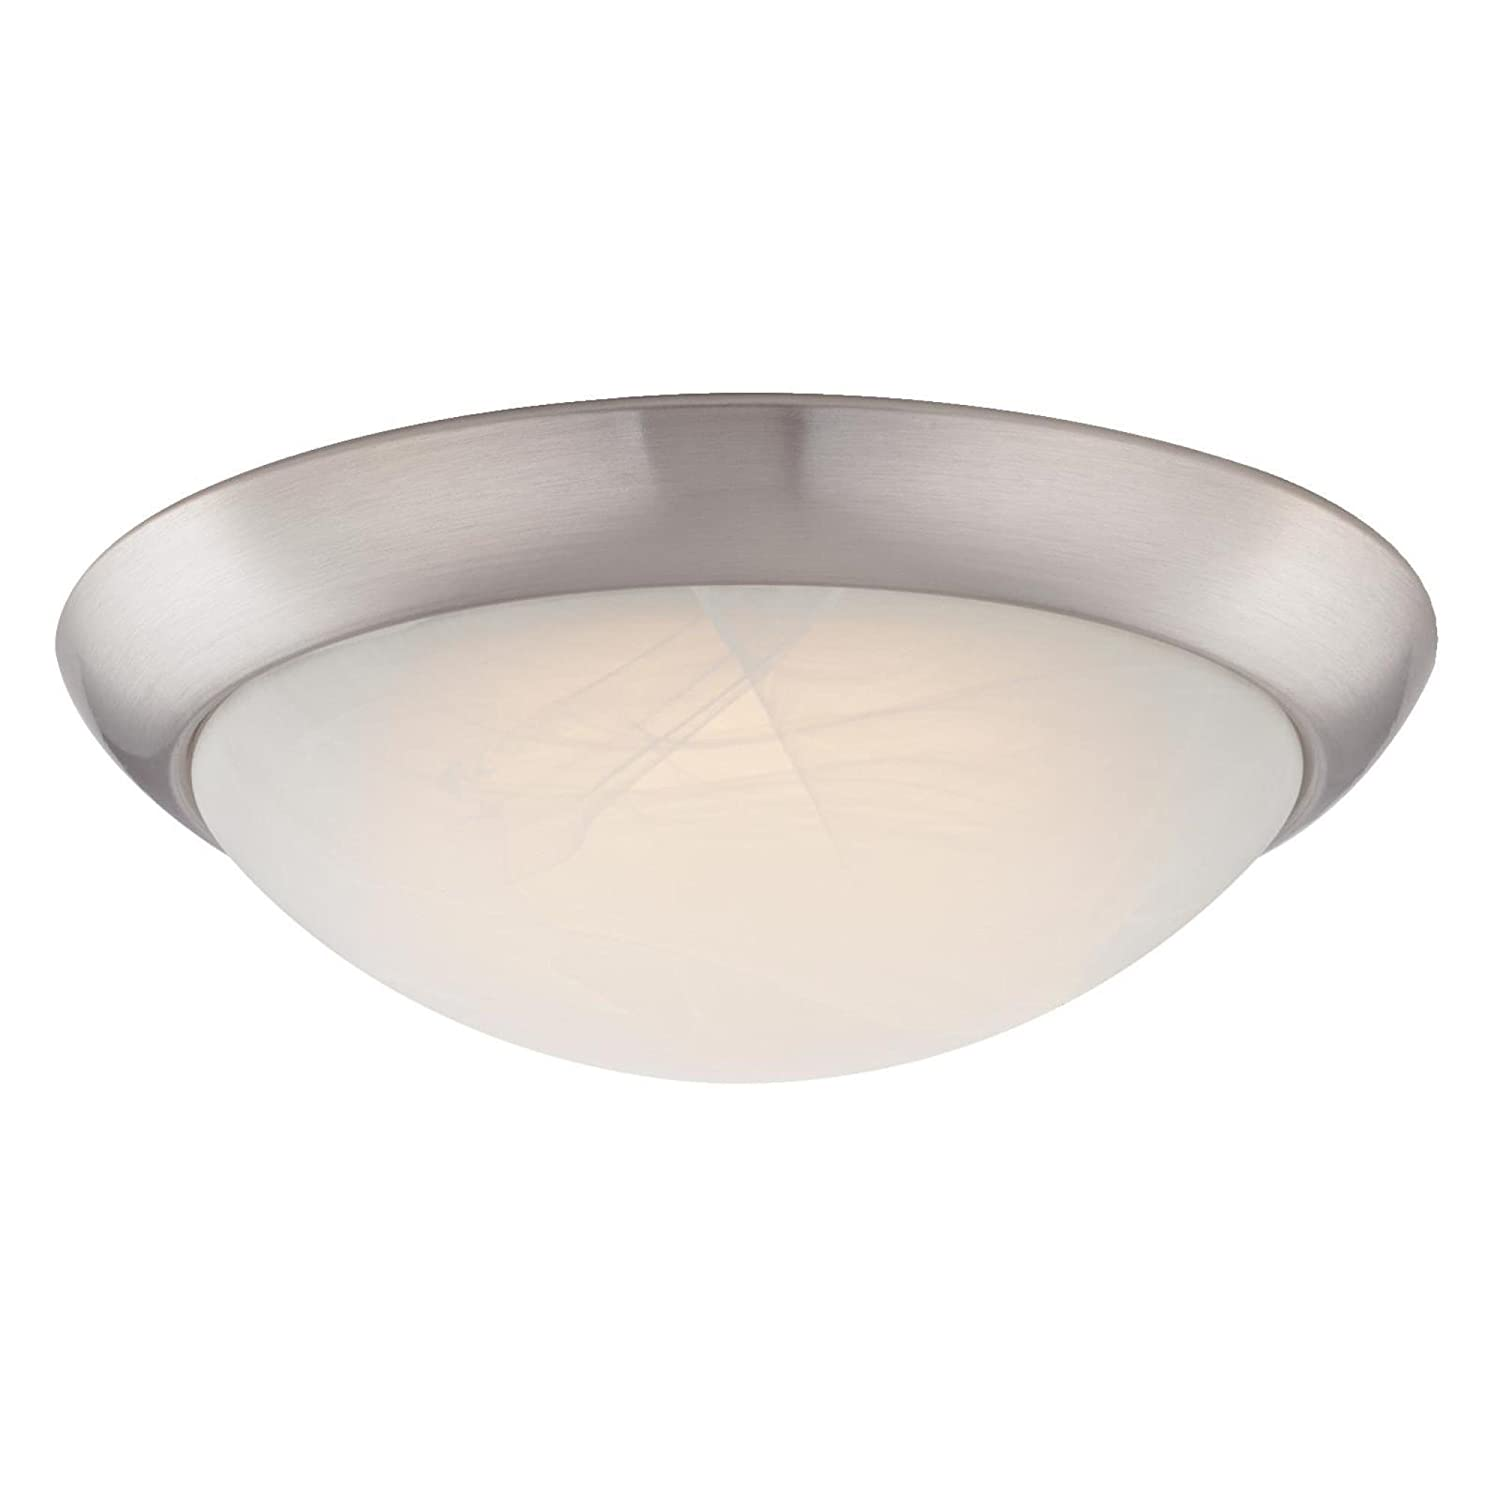 6308800 11 inch led indoor flush mount ceiling fixture brushed nickel finish with white alabaster glass amazon com